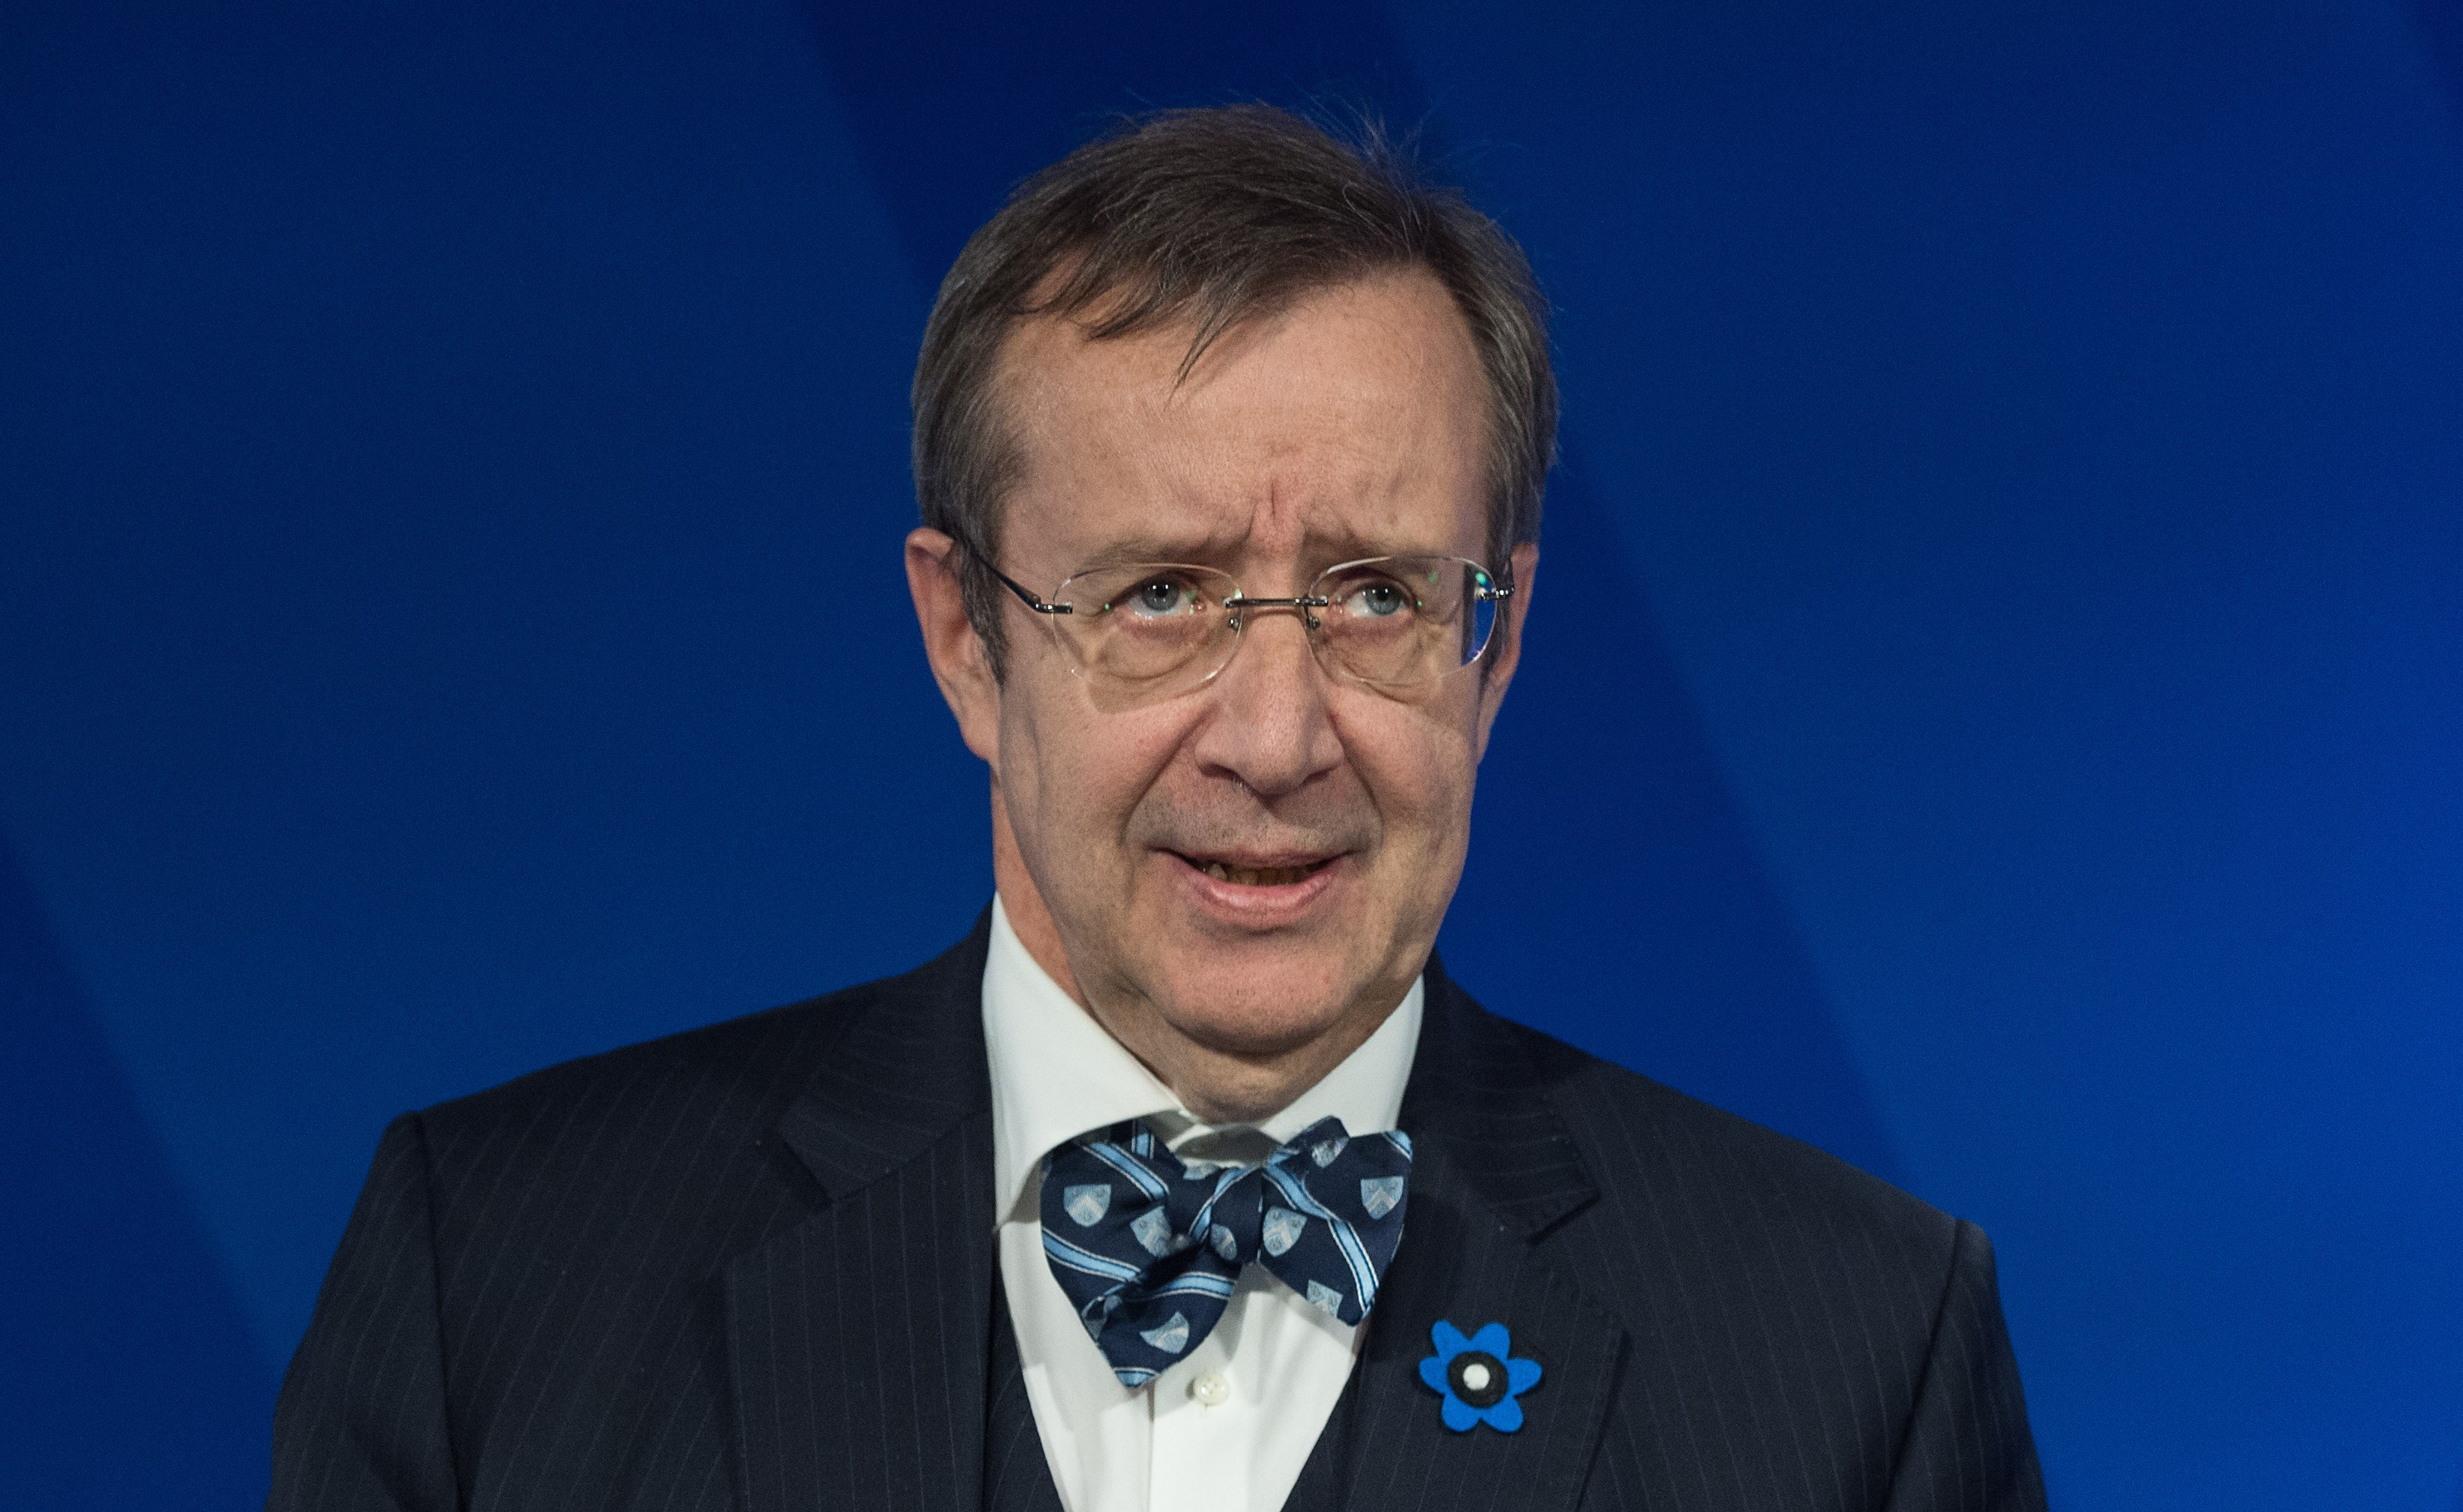 """Estonian President Toomas Ilves speaks at a talk entitled """"The Estonia Model: Why a Free and Secure Internet Matter """"at the Wilson Center in Washington, DC, on April 21, 2015. AFP PHOTO/NICHOLAS KAMM"""